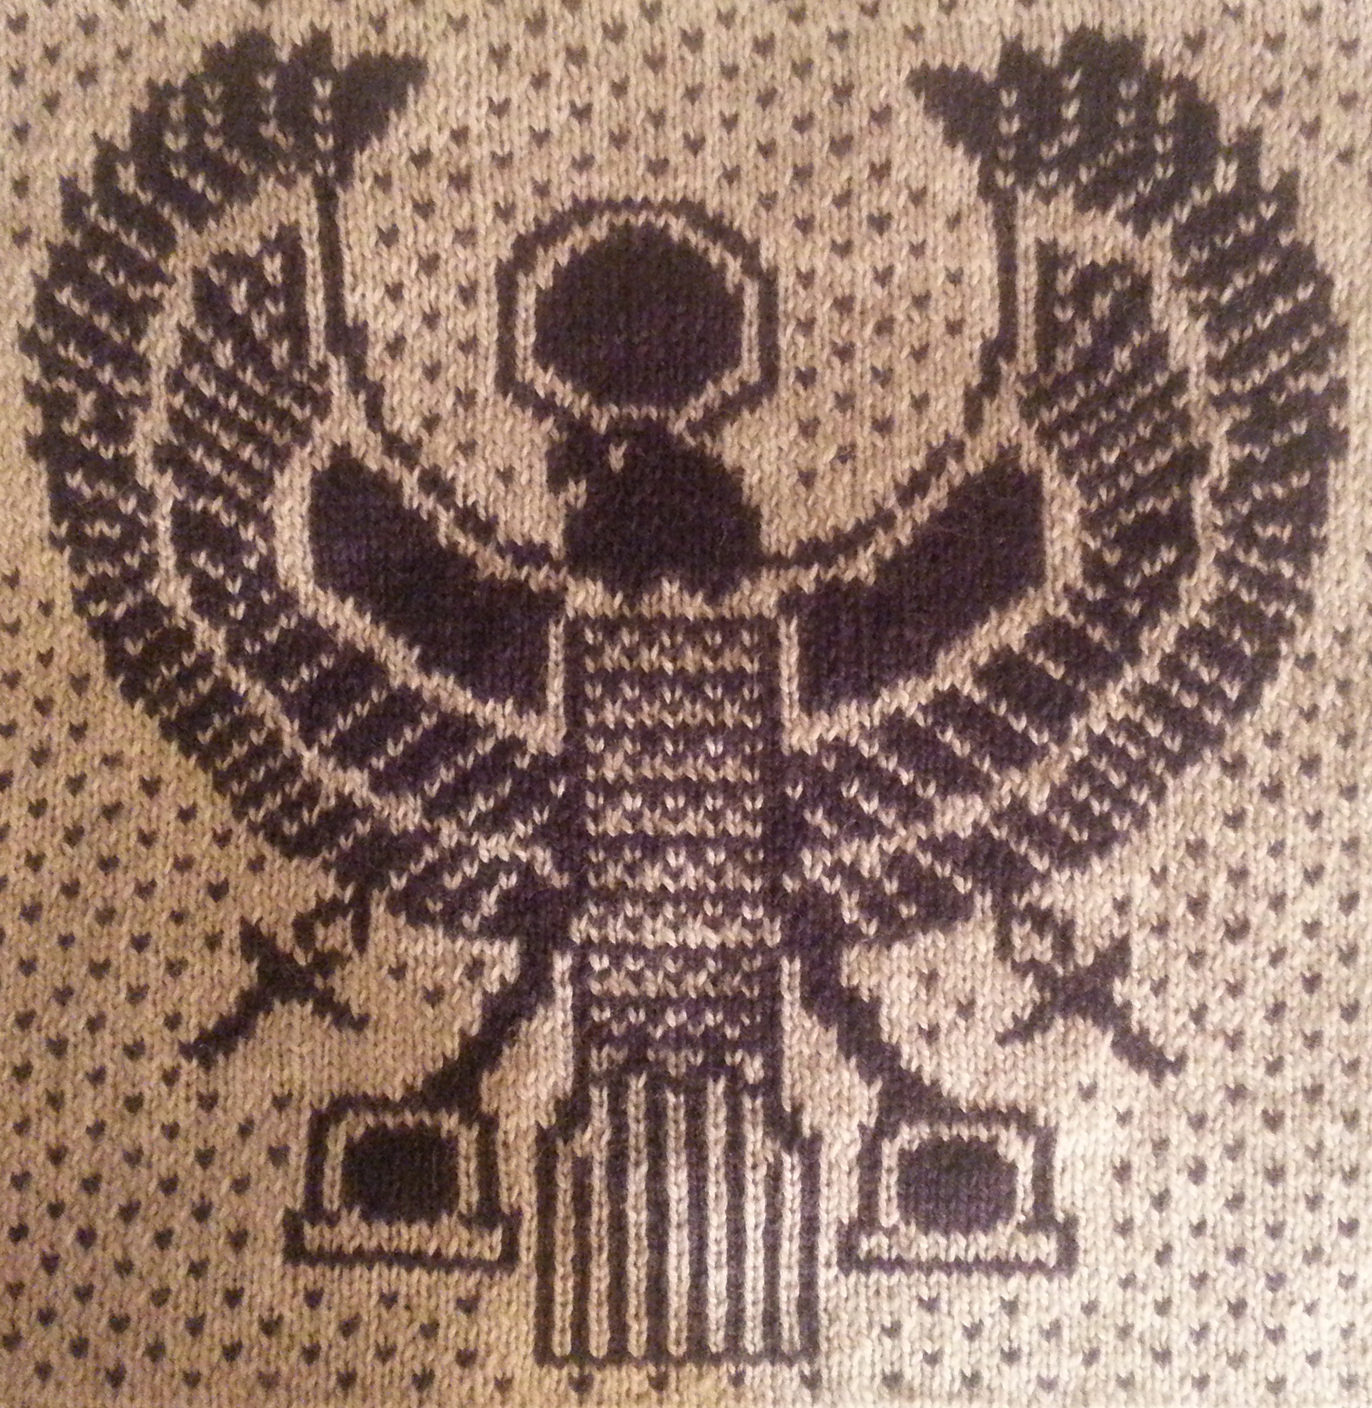 Free Knitting Pattern for Egyptian Horus Block